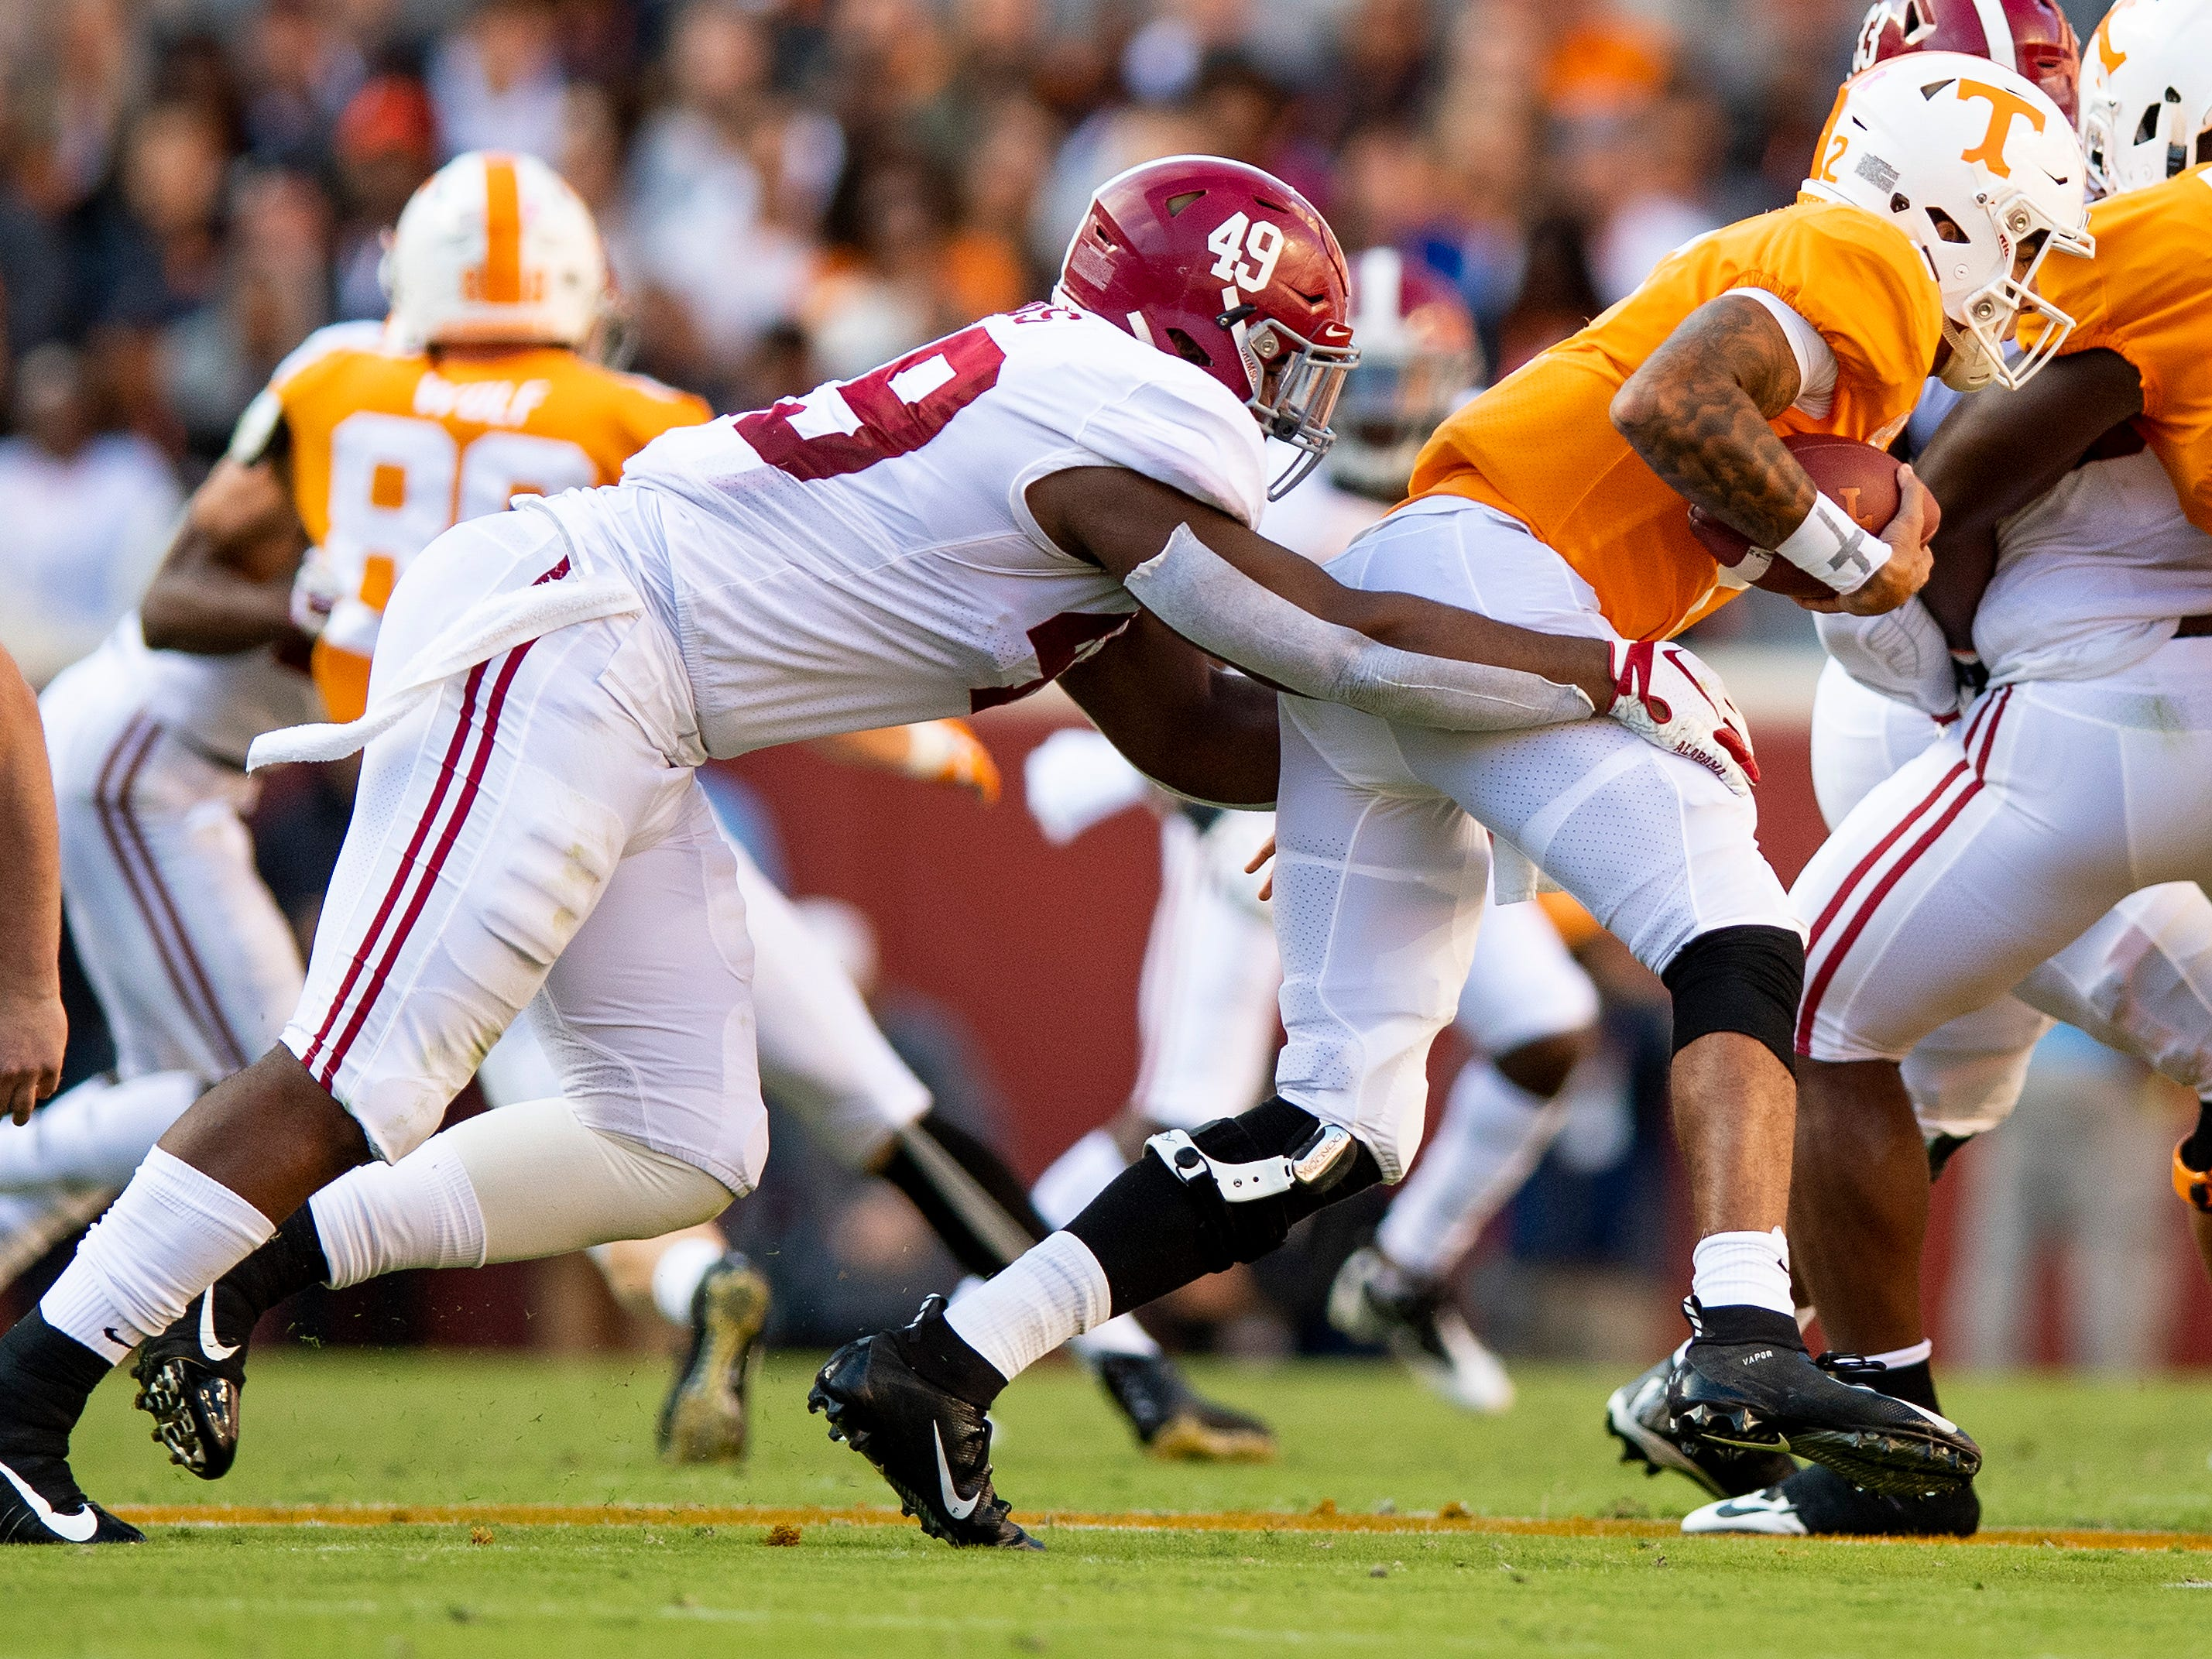 Alabama defensive lineman Isaiah Buggs (49) sacks Tennessee quarterback Jarrett Guarantano (2) in first half action at Neyland Stadium in Knoxville, Tn., on Saturday October 20, 2018.